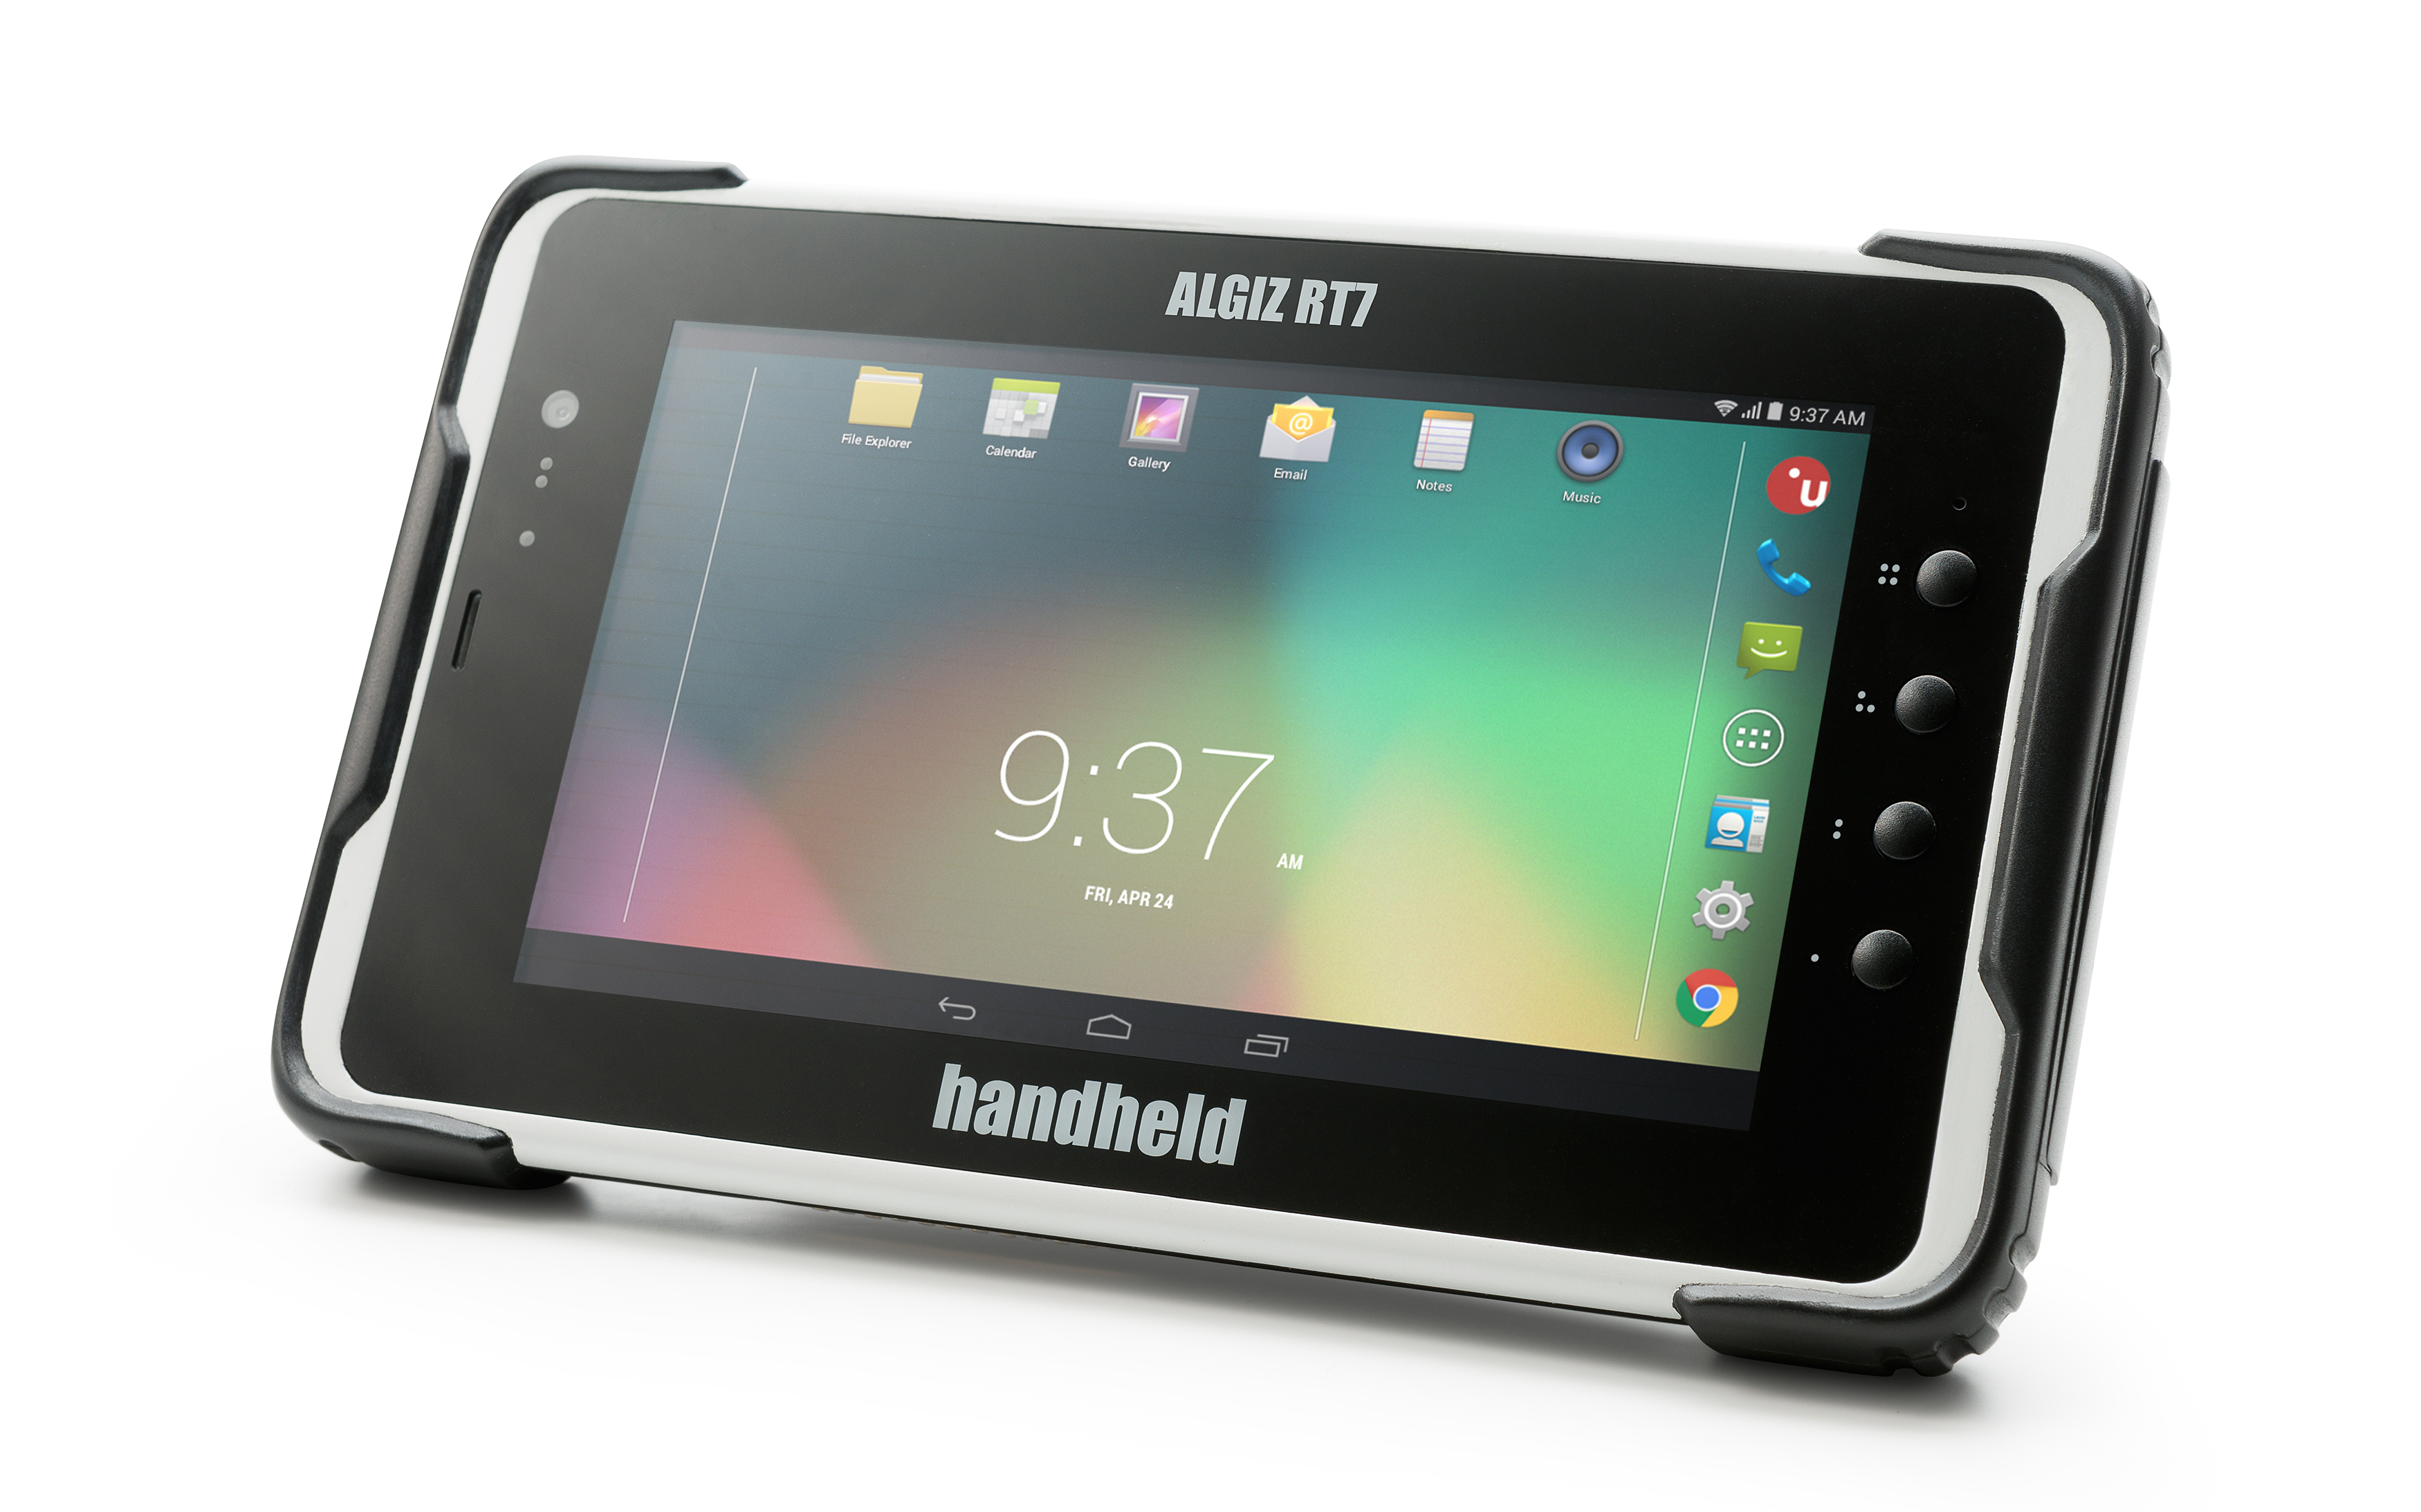 Handheld Group has announced a new version of its popular Algiz RT7 Android tablet that adds a specialized RFID reader